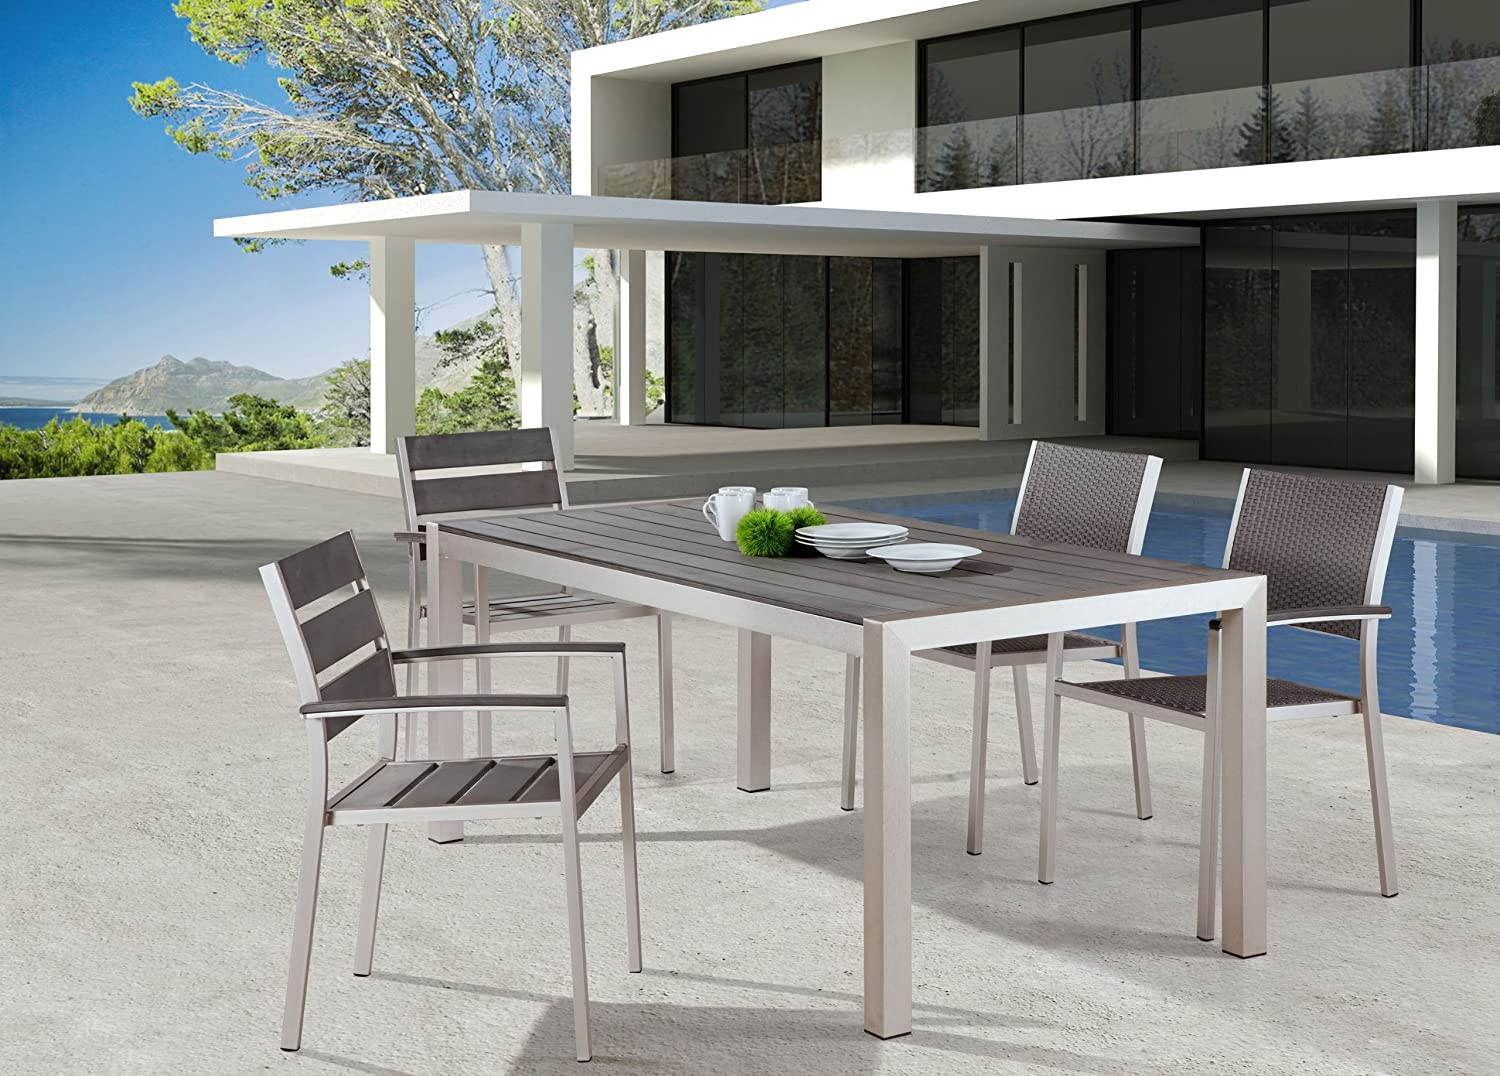 Amazing Amazon.com : Zuo Outdoor Metropolitan Brushed Aluminum Dining Table : Patio Dining  Tables : Garden U0026 Outdoor